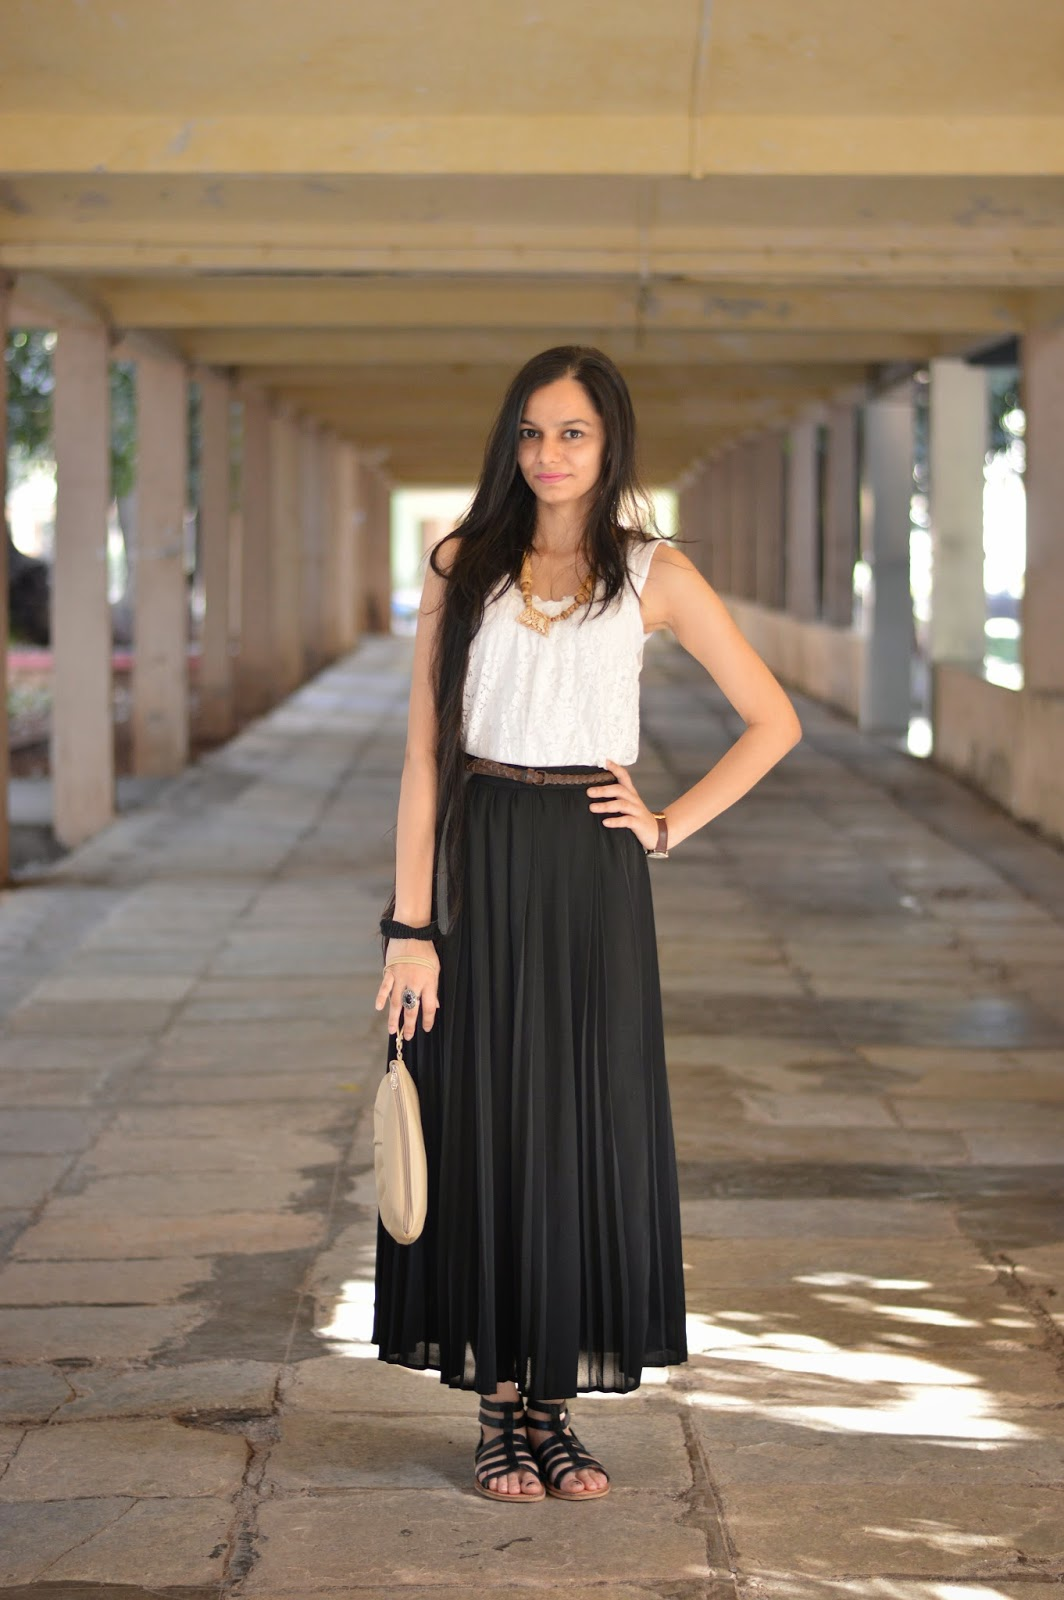 pleated maxi skirt, lace vest, gladiator heels, what to buy in bandra, mumbai streetshopping, mumbai streetstyle, indian fashion blogger, mumbai fashion blog, looks for less, what to buy in colaba causeway, how to wear gladiator heels